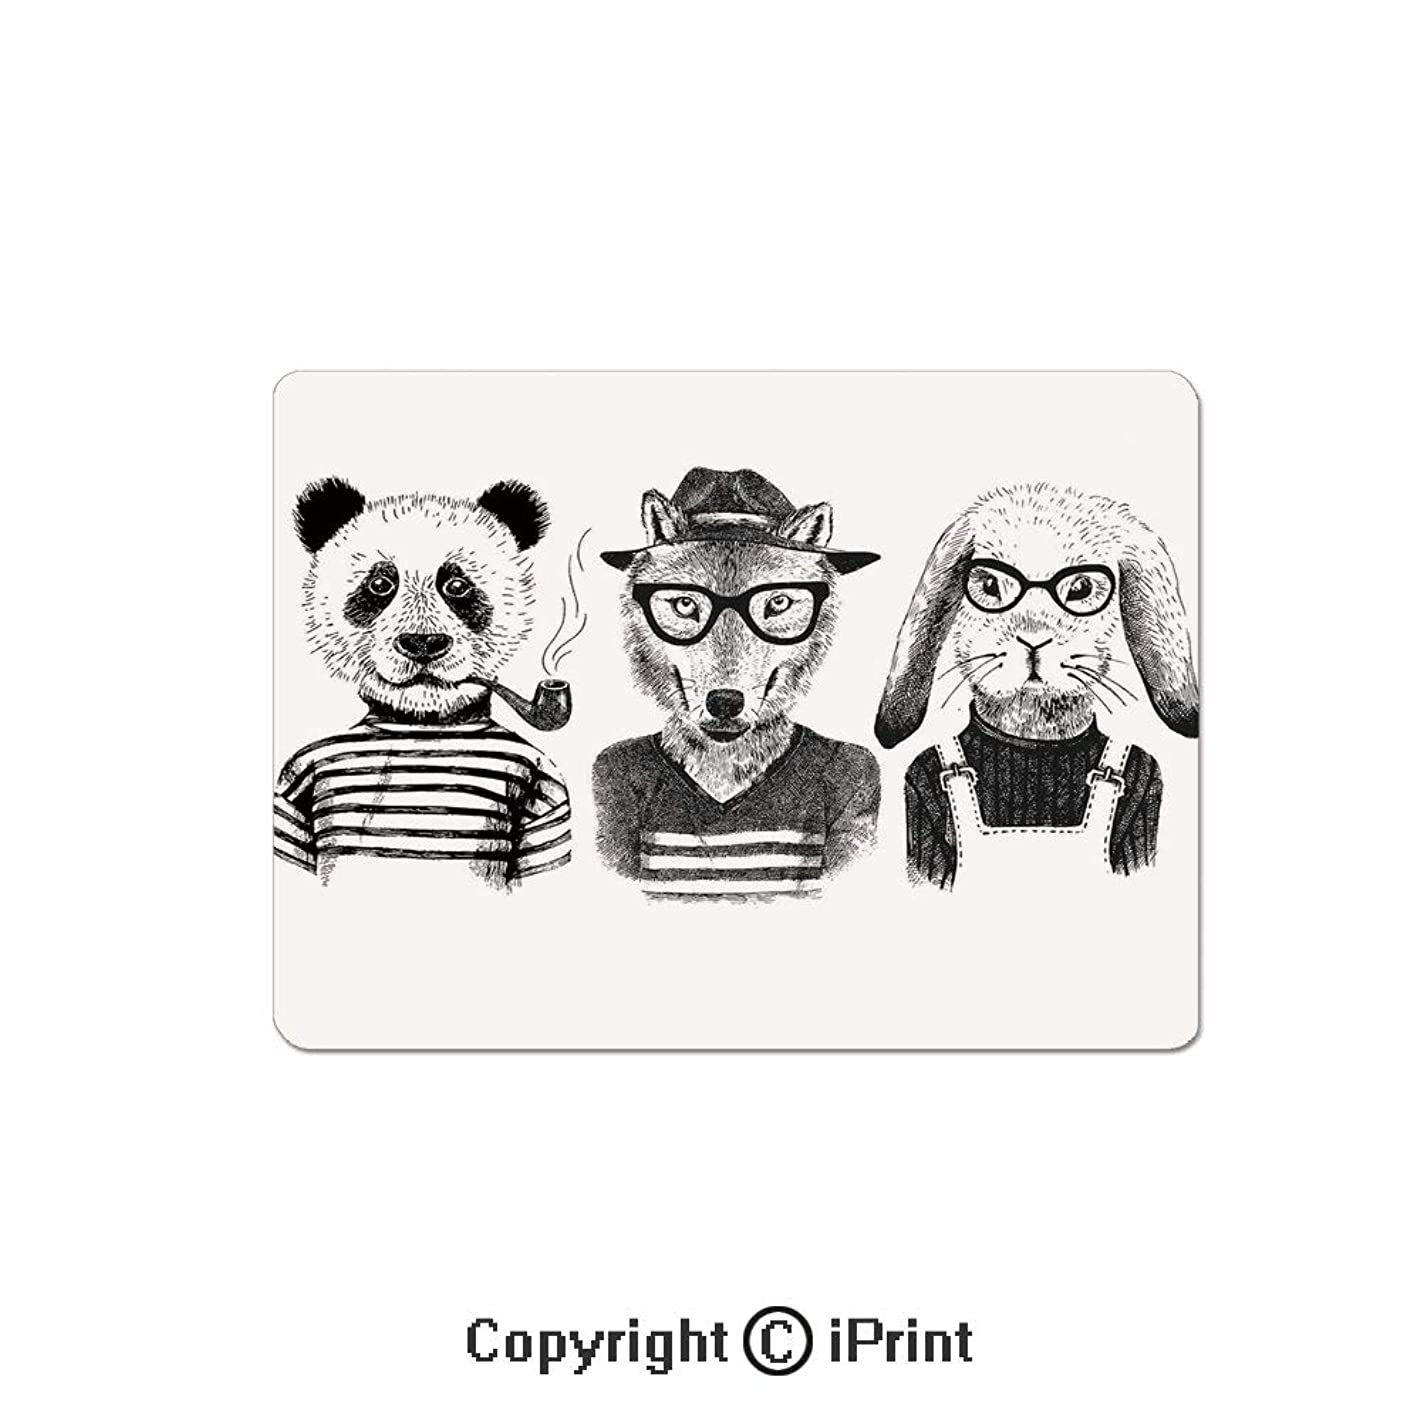 Thick 3mm Gaming Mouse Pad Hipster Panda Bear Cigar Fox and Rabbit Glasses in Human Clothes Illustration Personality Design Non Slip Rubber Mouse Mat,7.1x8.7 inch,Black Grey White